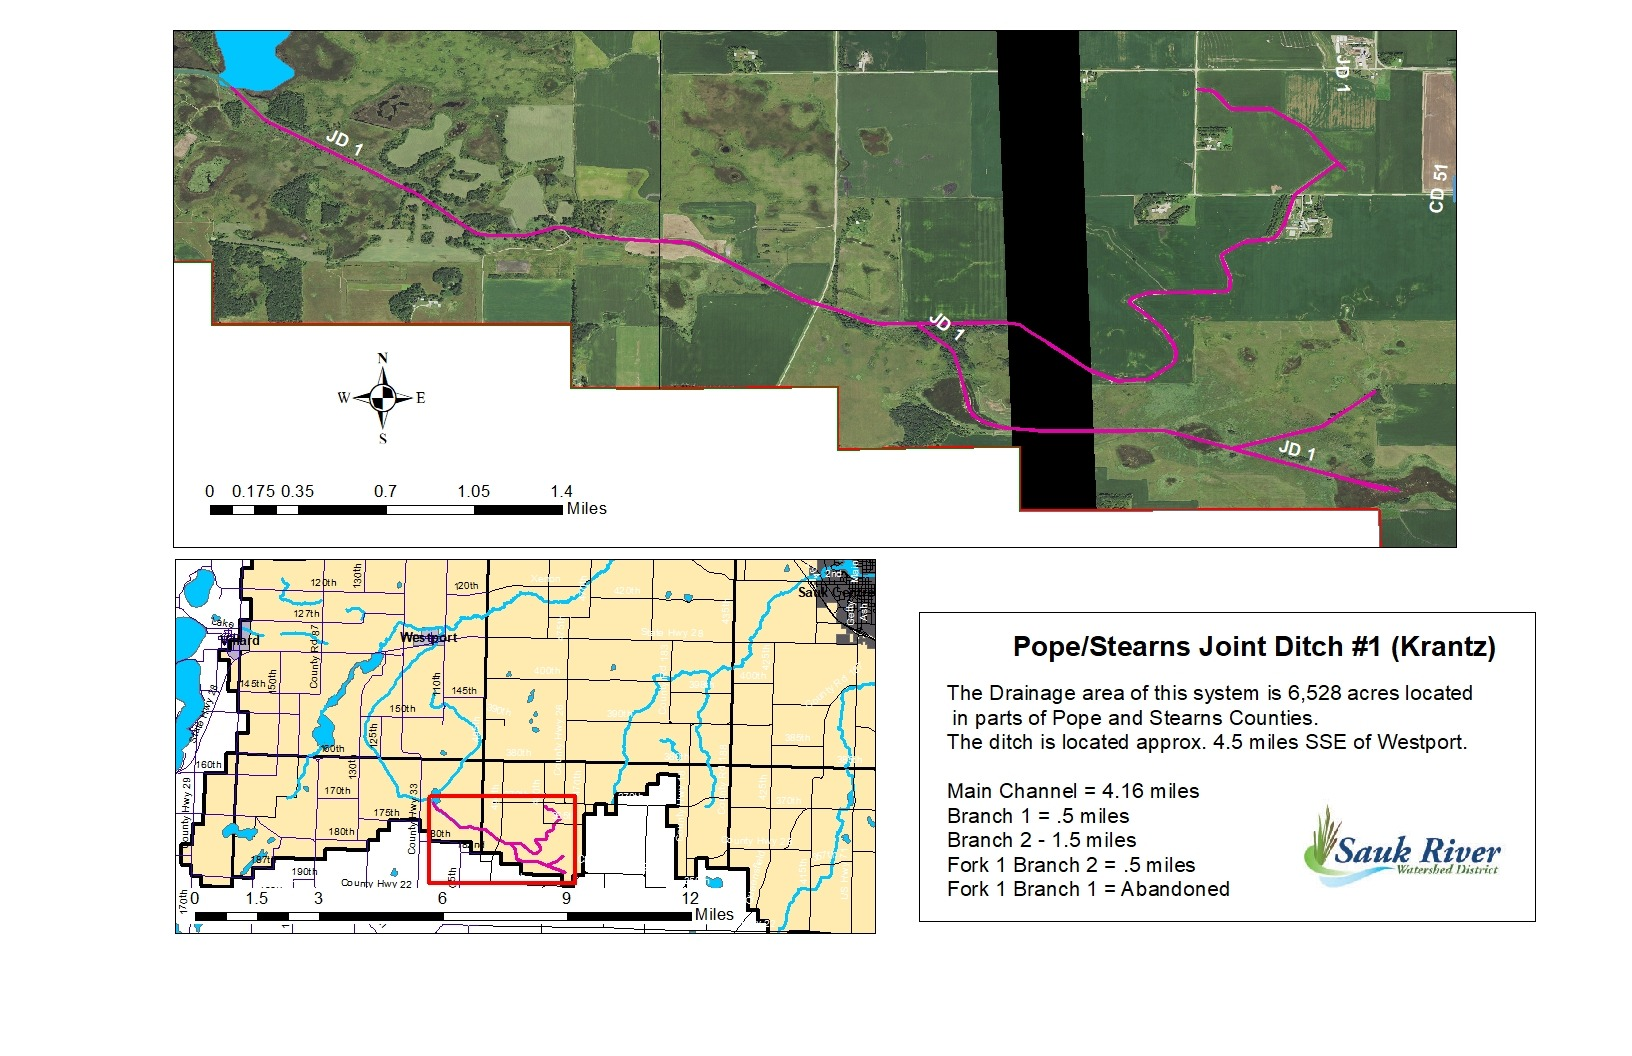 Sauk River Watershed Pope/Stearns Joint District County Ditch 1 (Krantz) Map